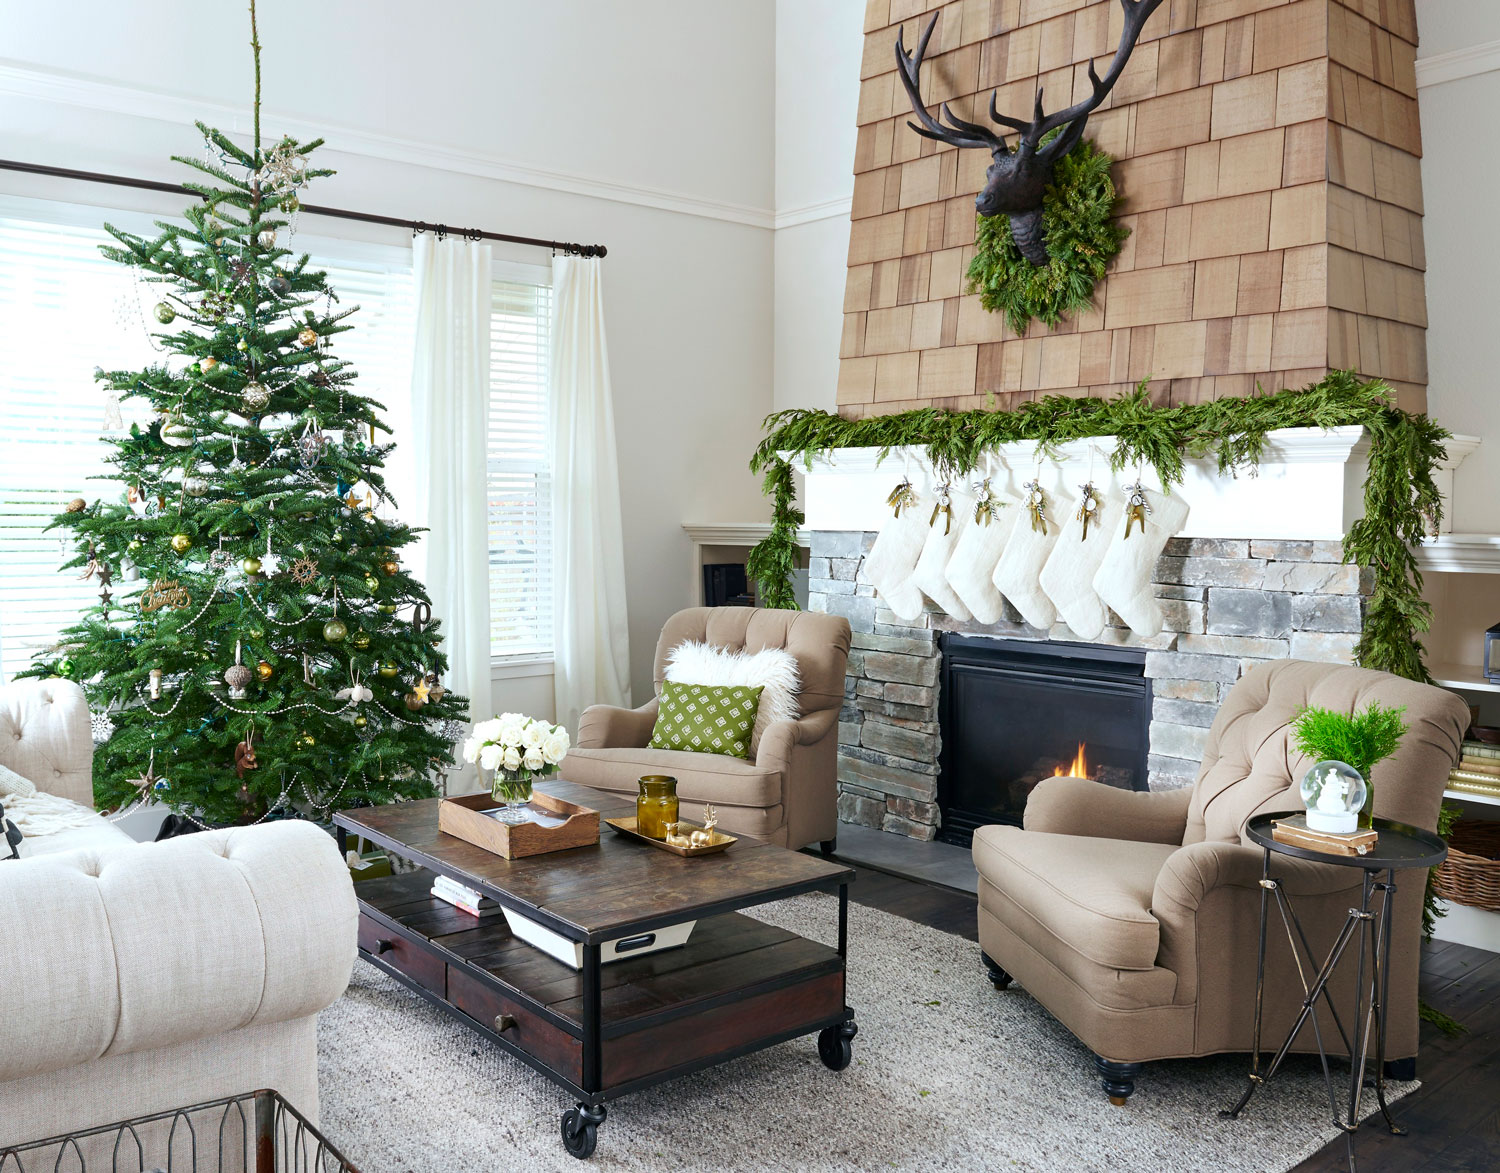 Rustic Christmas Décor | Traditional Home on Traditional Rustic Decor  id=50189